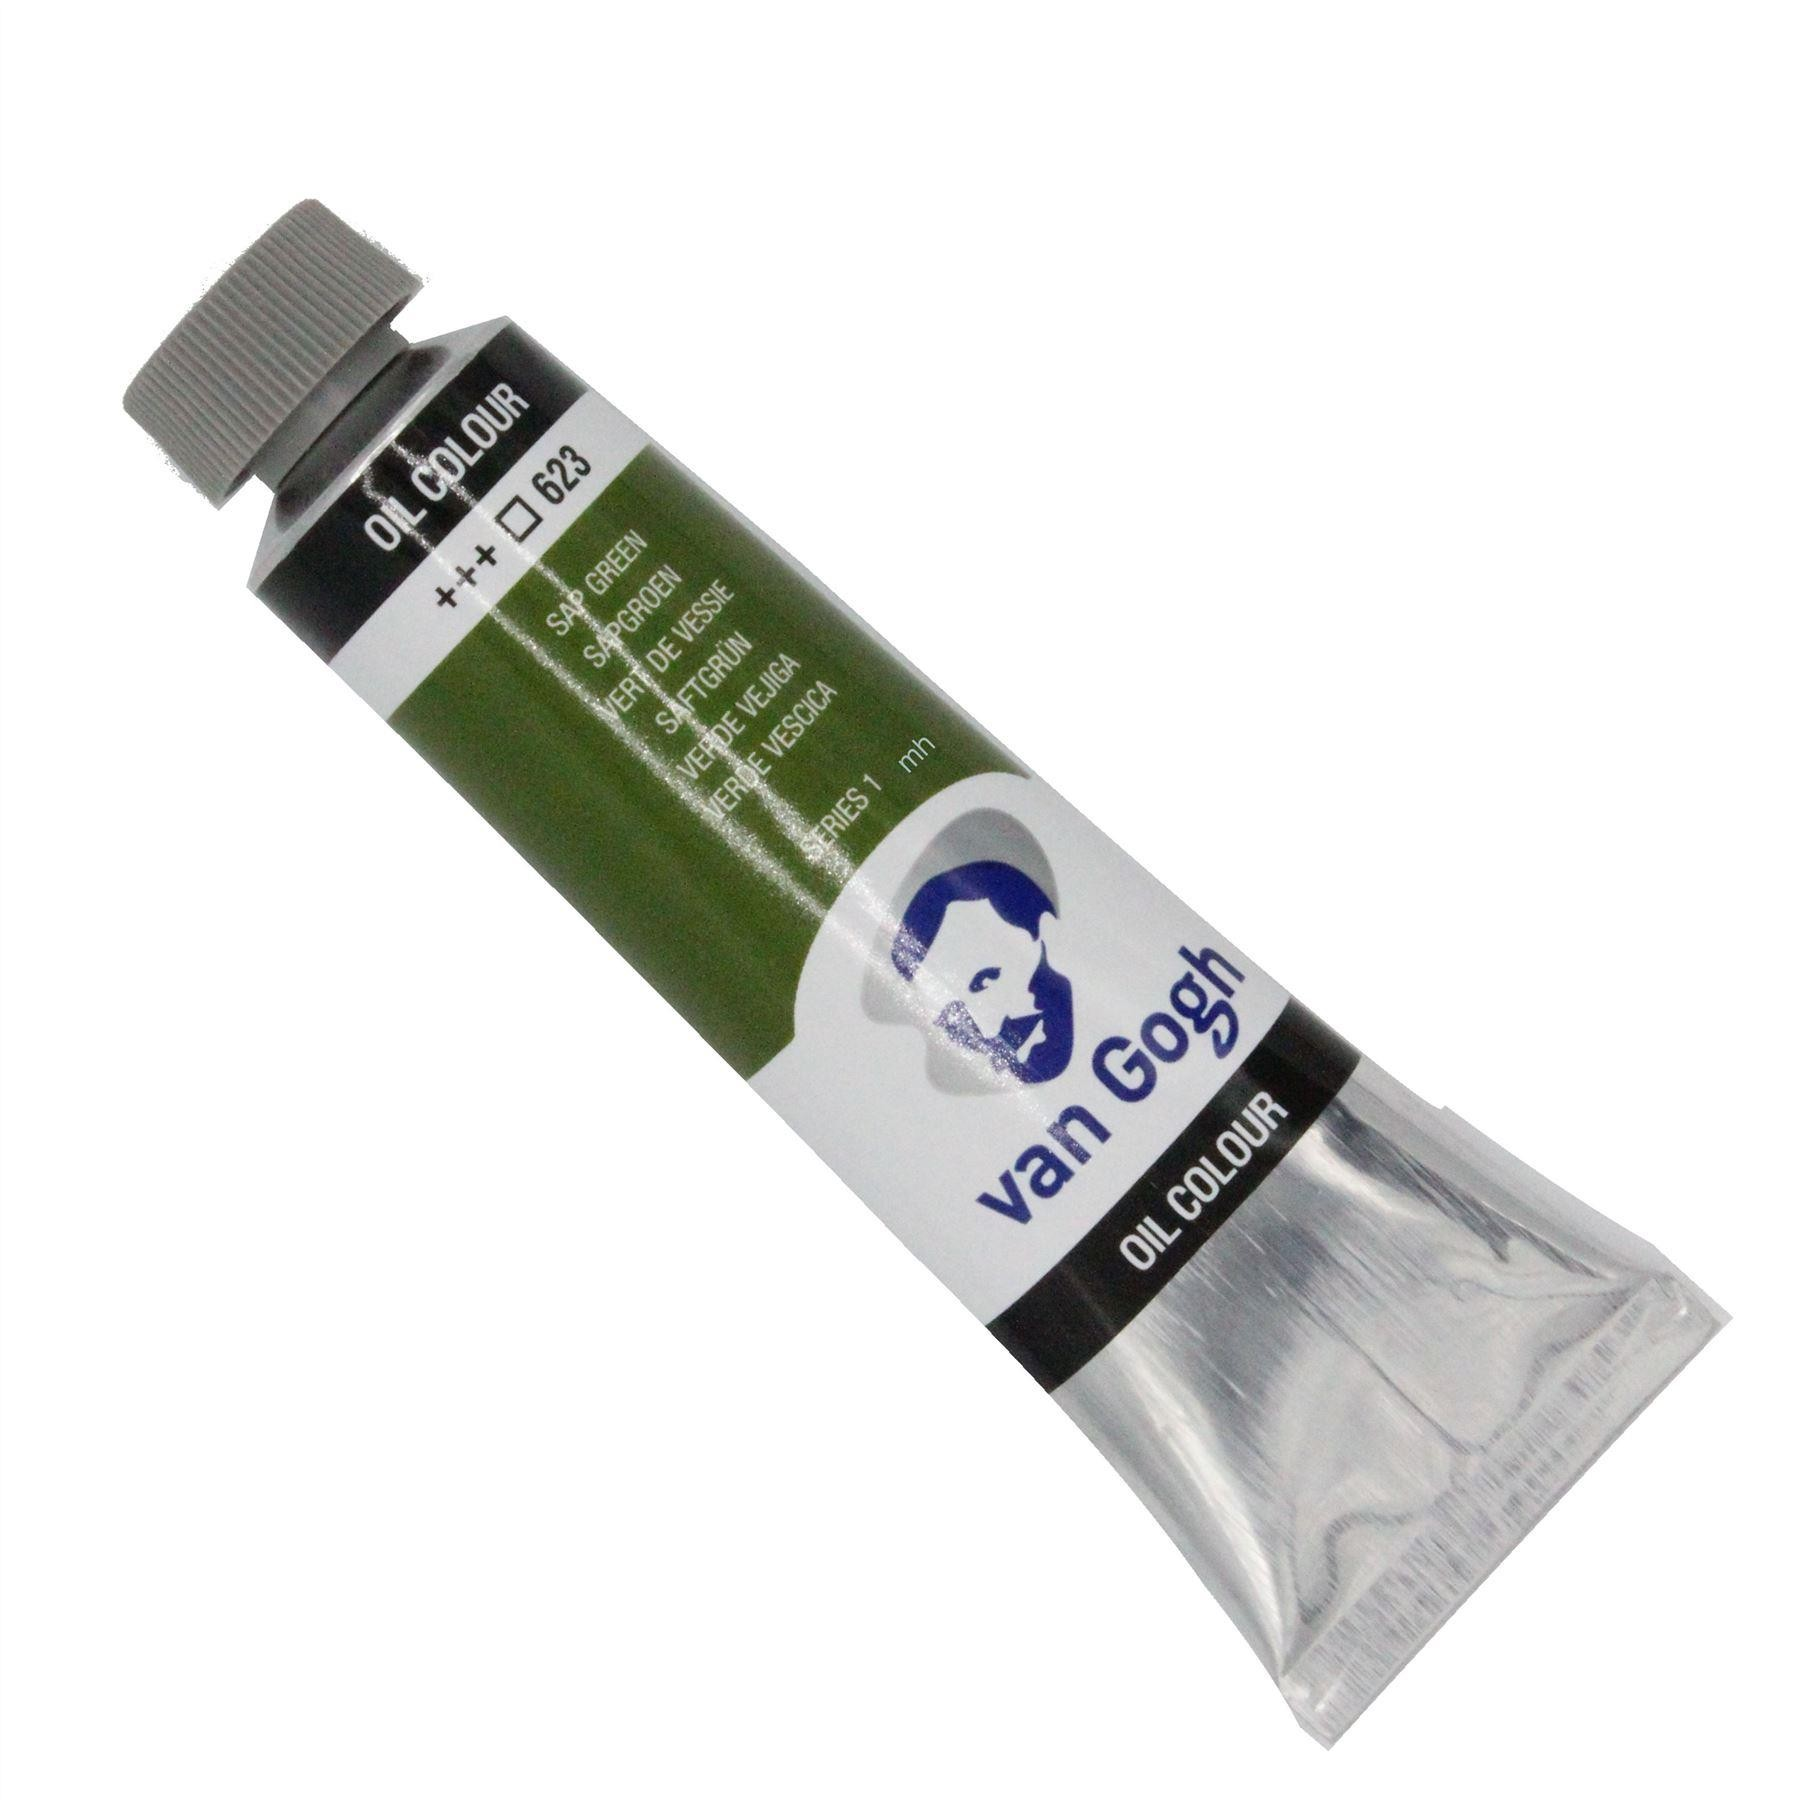 Royal Talens Van Gogh Studio Oil Colour Paint - Single 40ml Tubes, 3 for 2 Offer Available